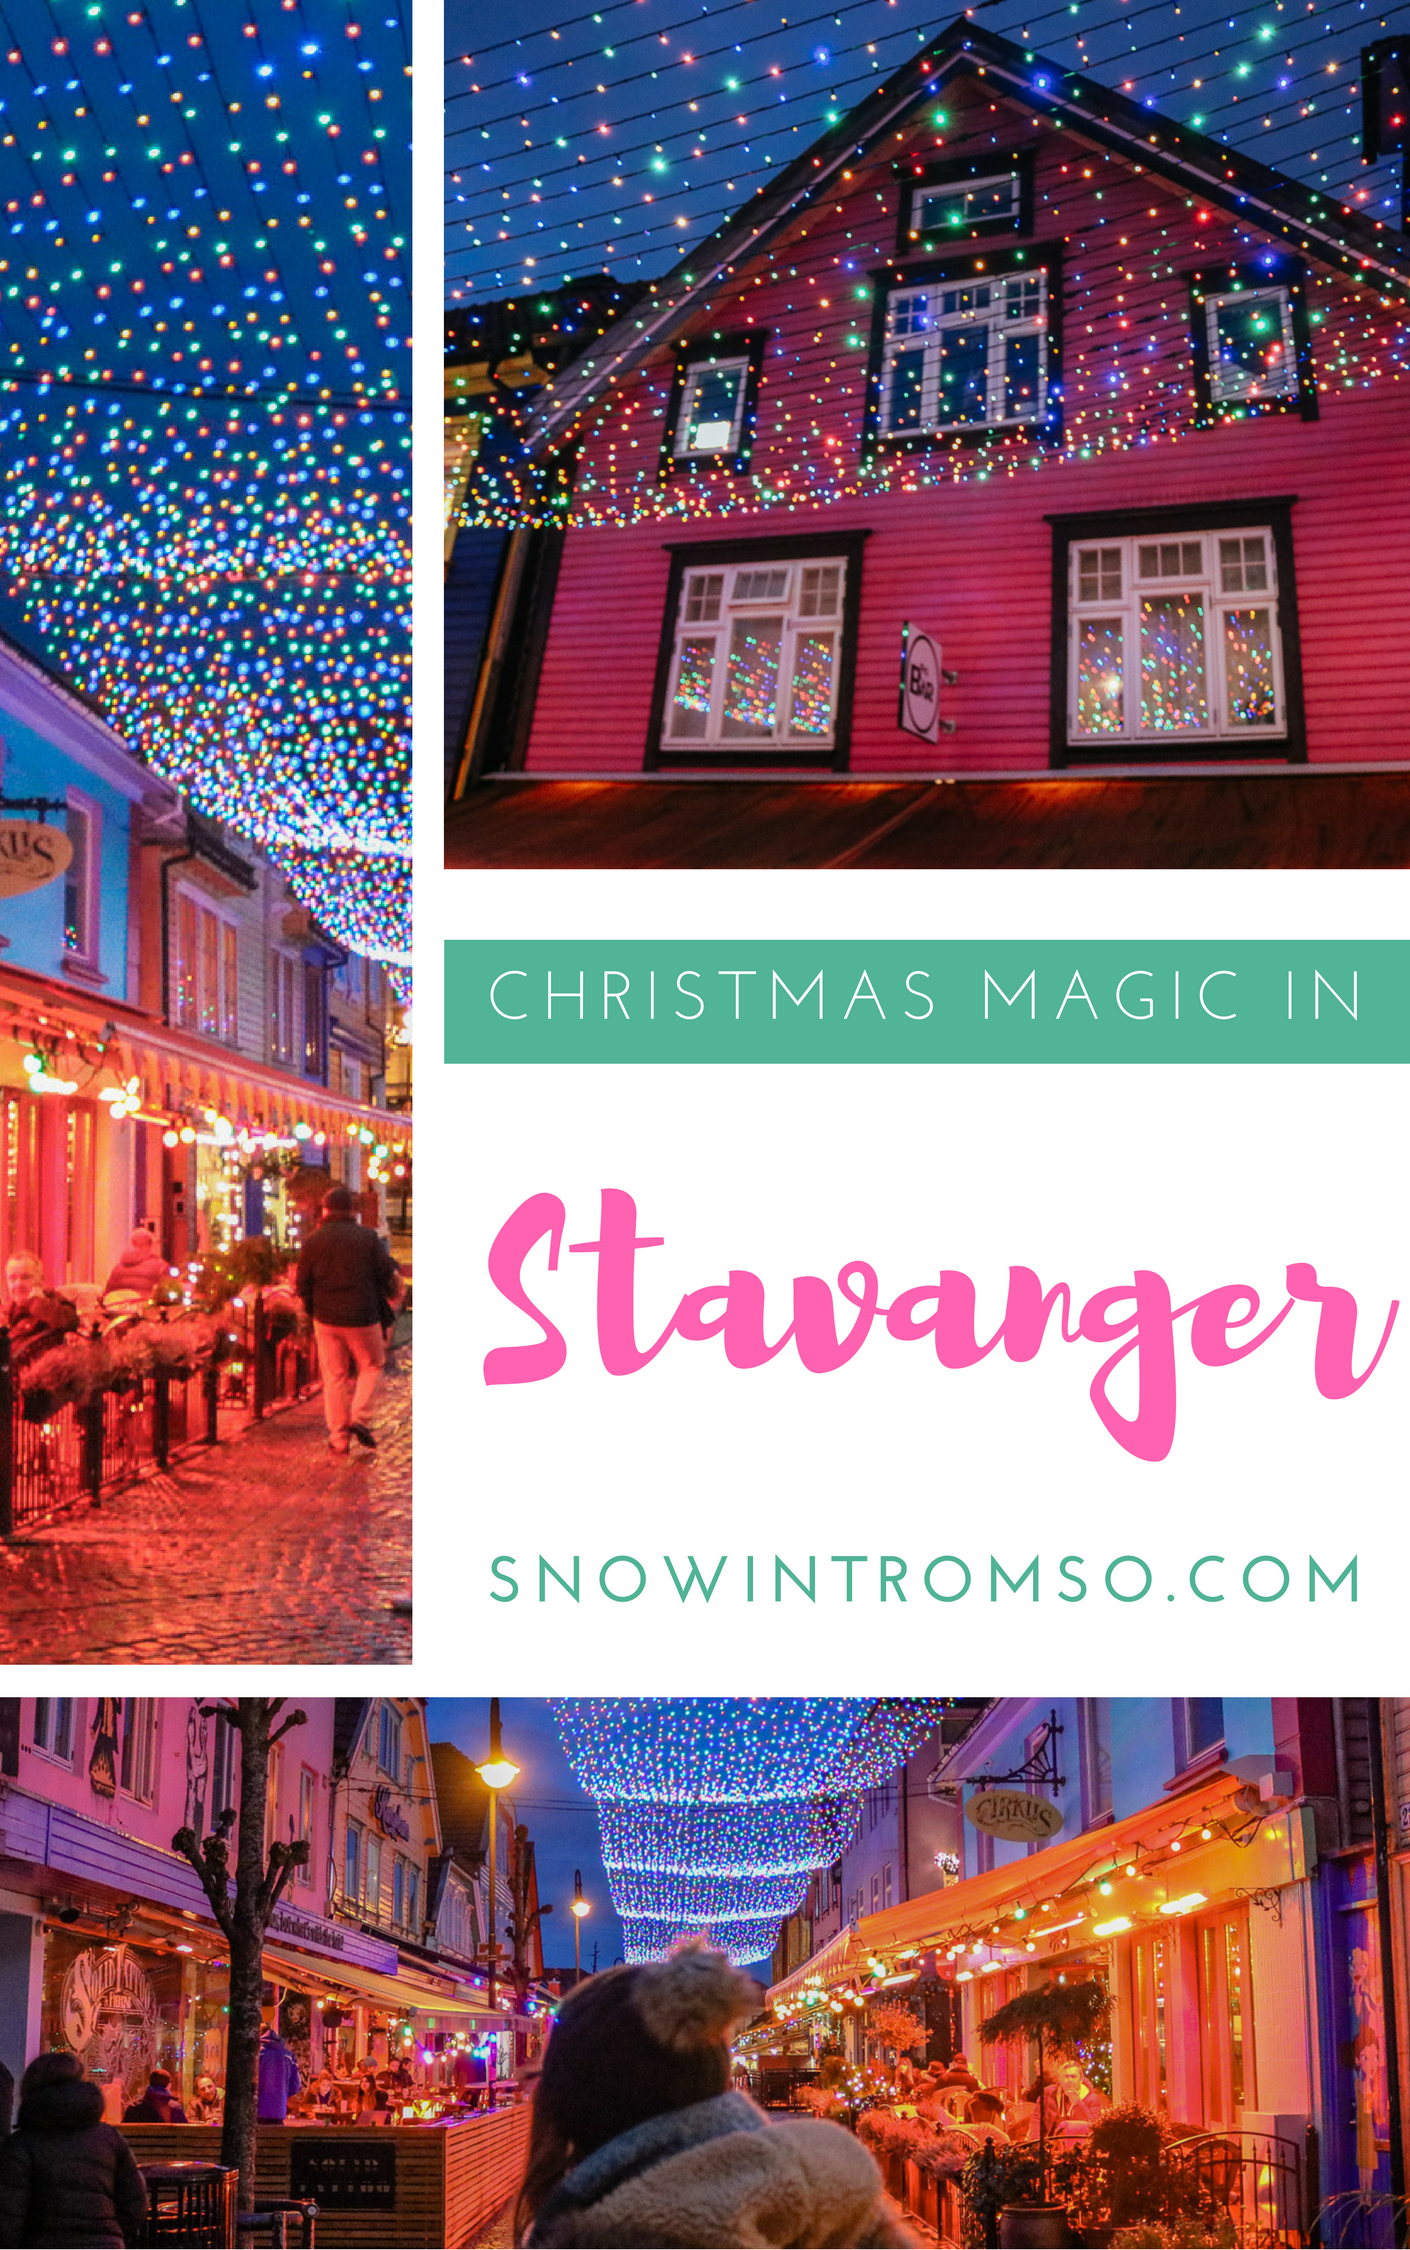 Planning a last-minute Christmas getaway? Here's why Stavanger is so magical this time of year!